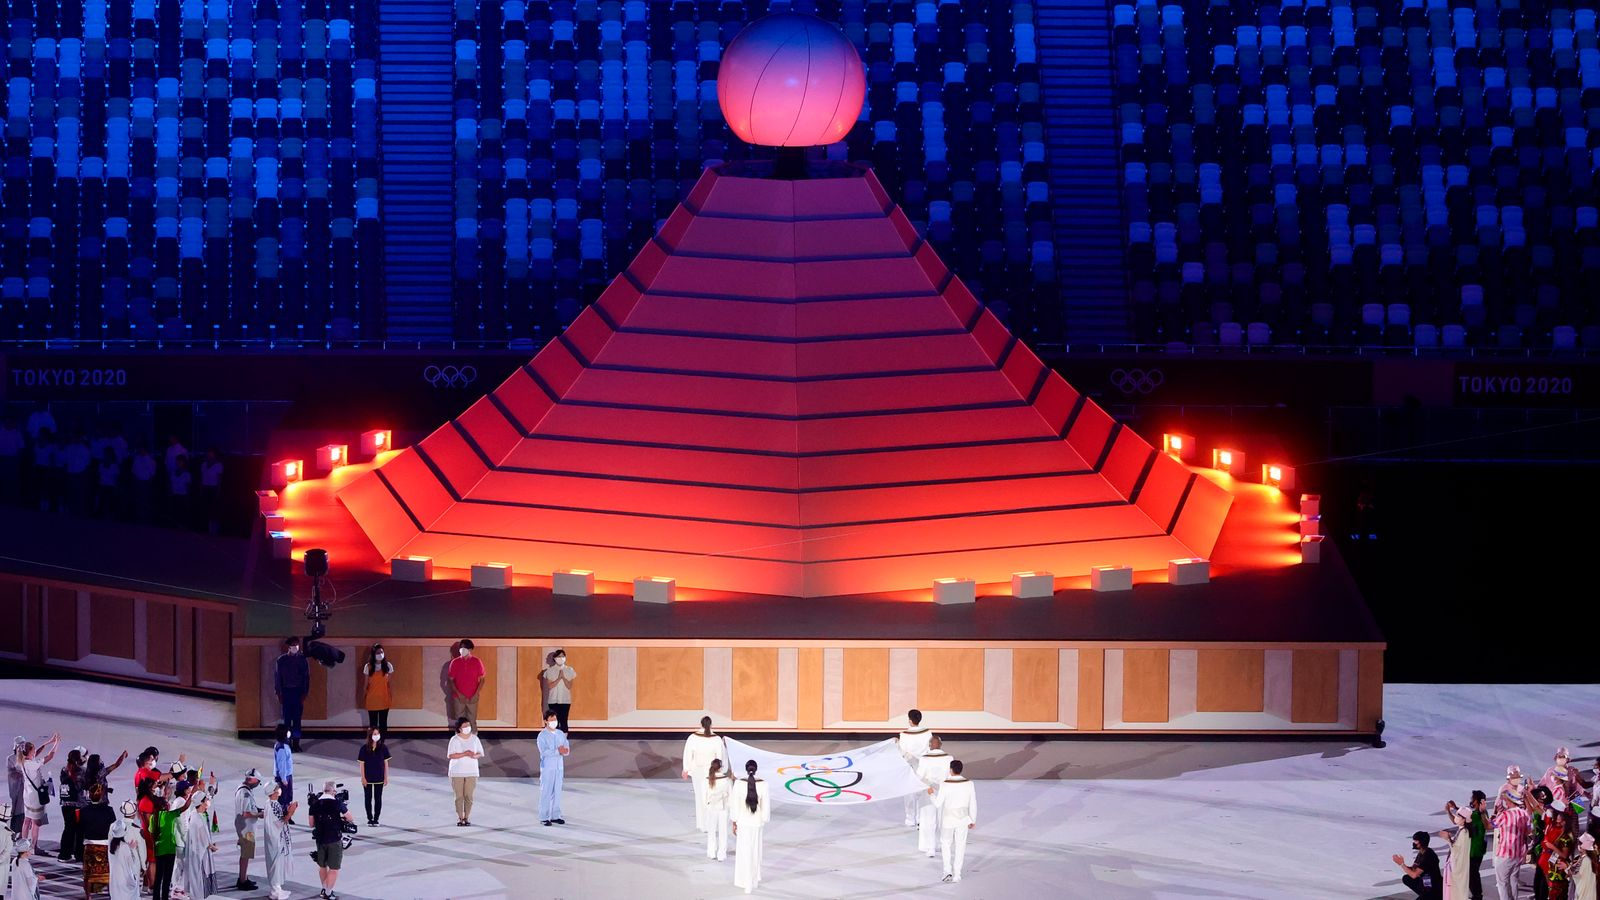 Tokyo Olympics: Opening ceremony was 'respectful, hopeful but sombre night'